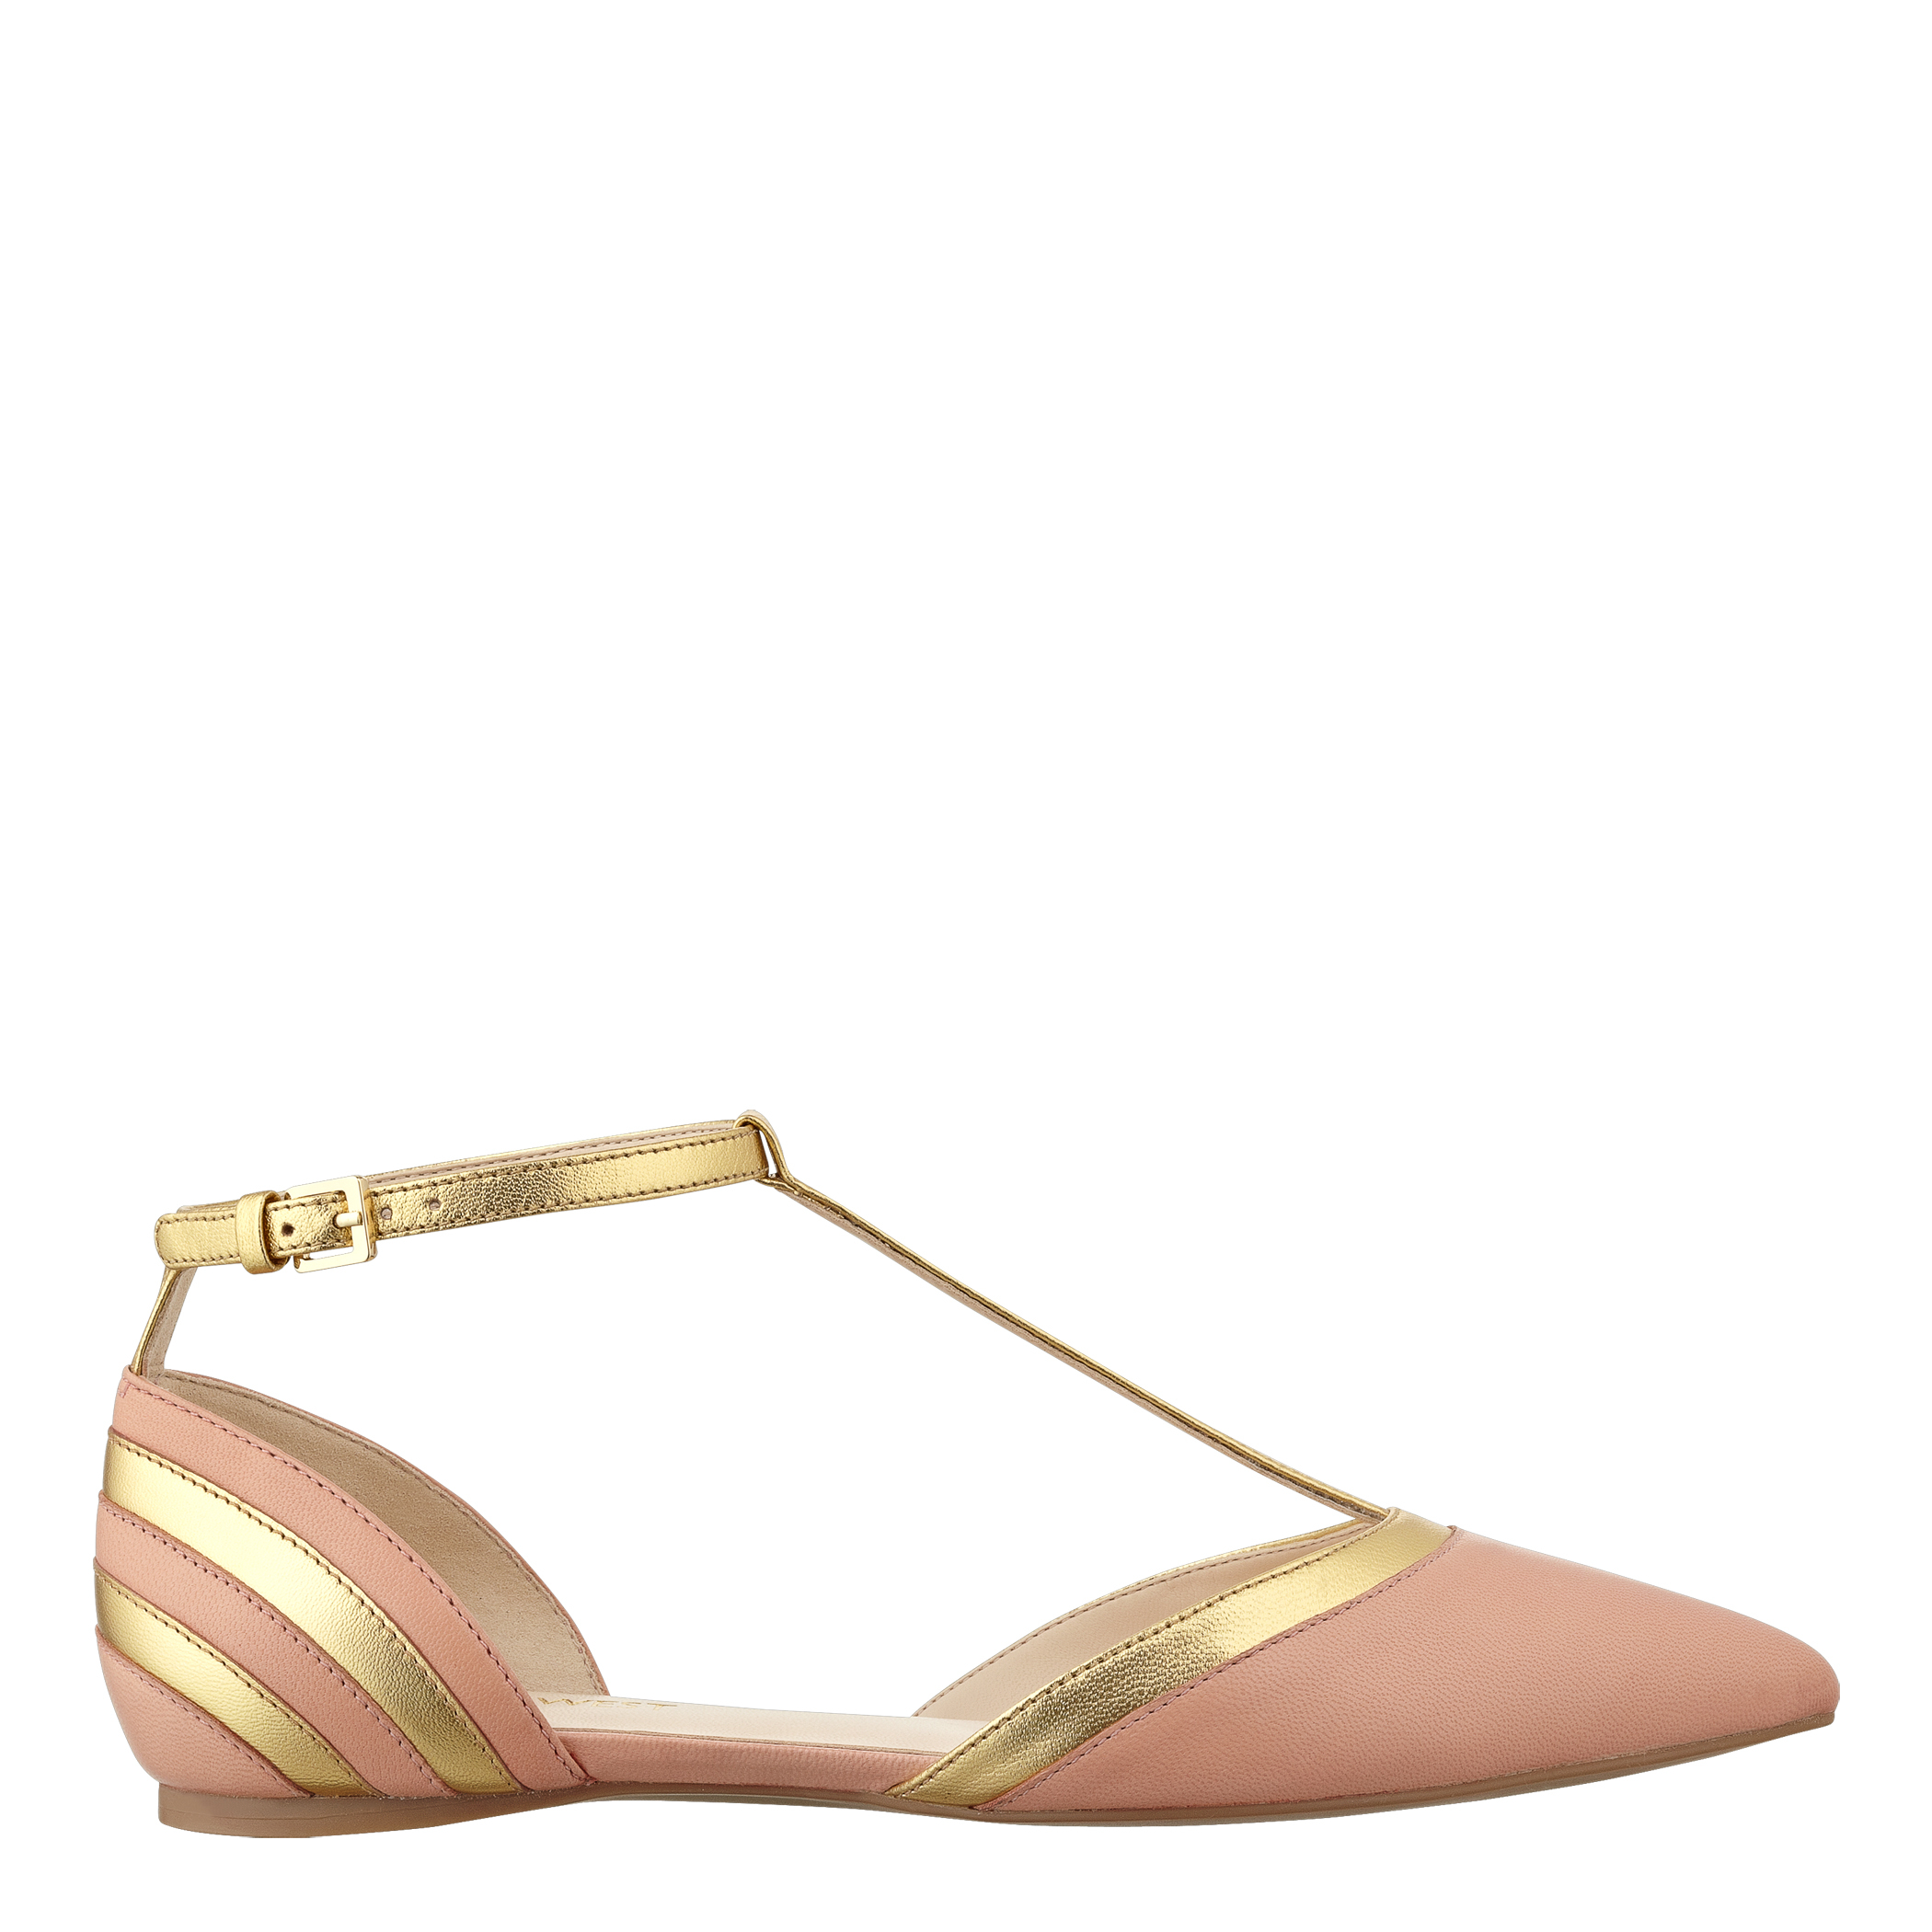 226452c8853e Lyst - Nine West Aubree Flat with Ankle Strap in Orange